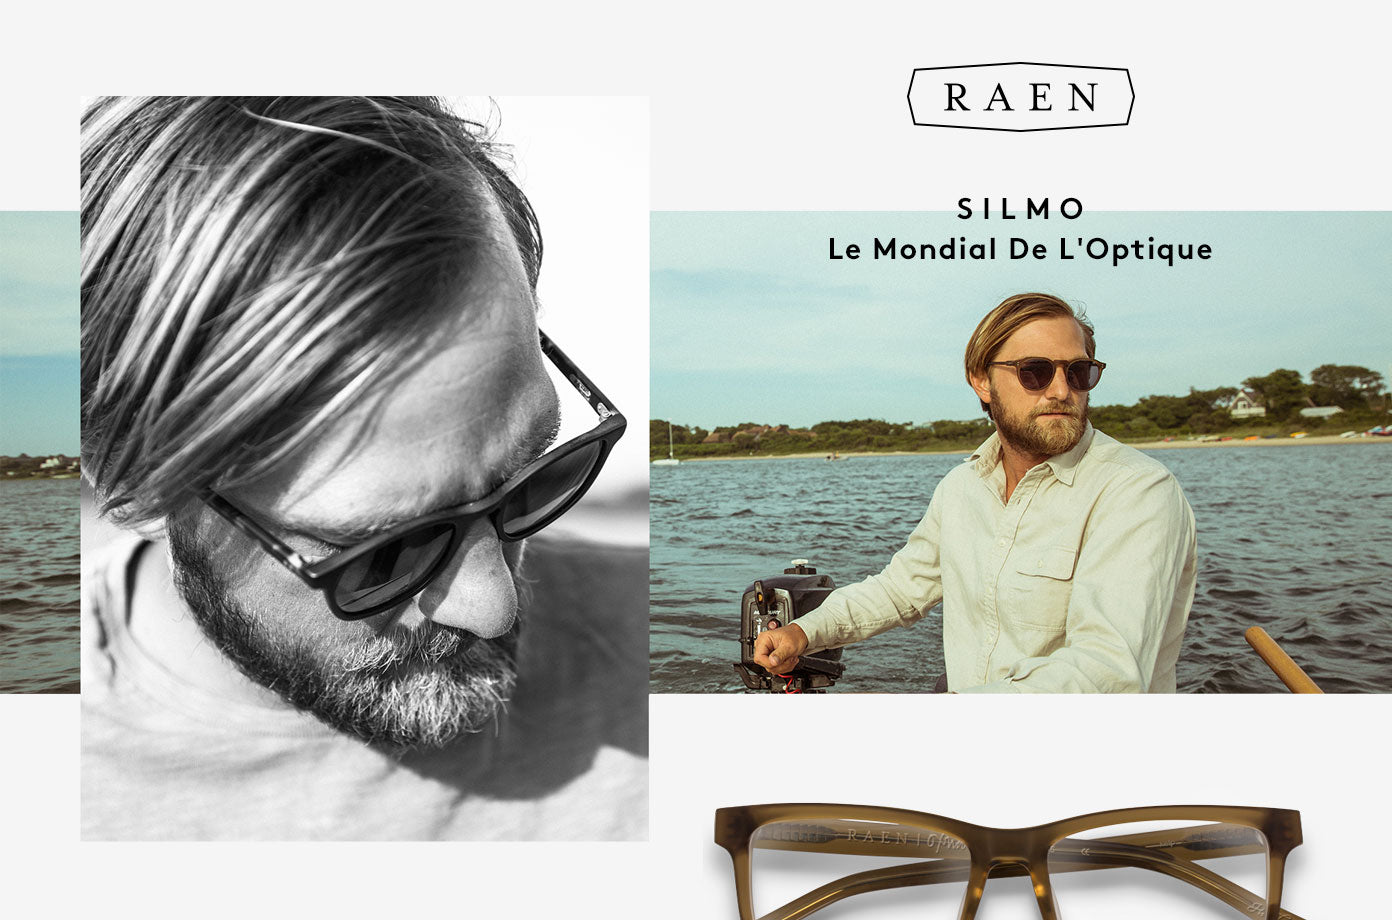 RAEN at SILMO September 23 – 26